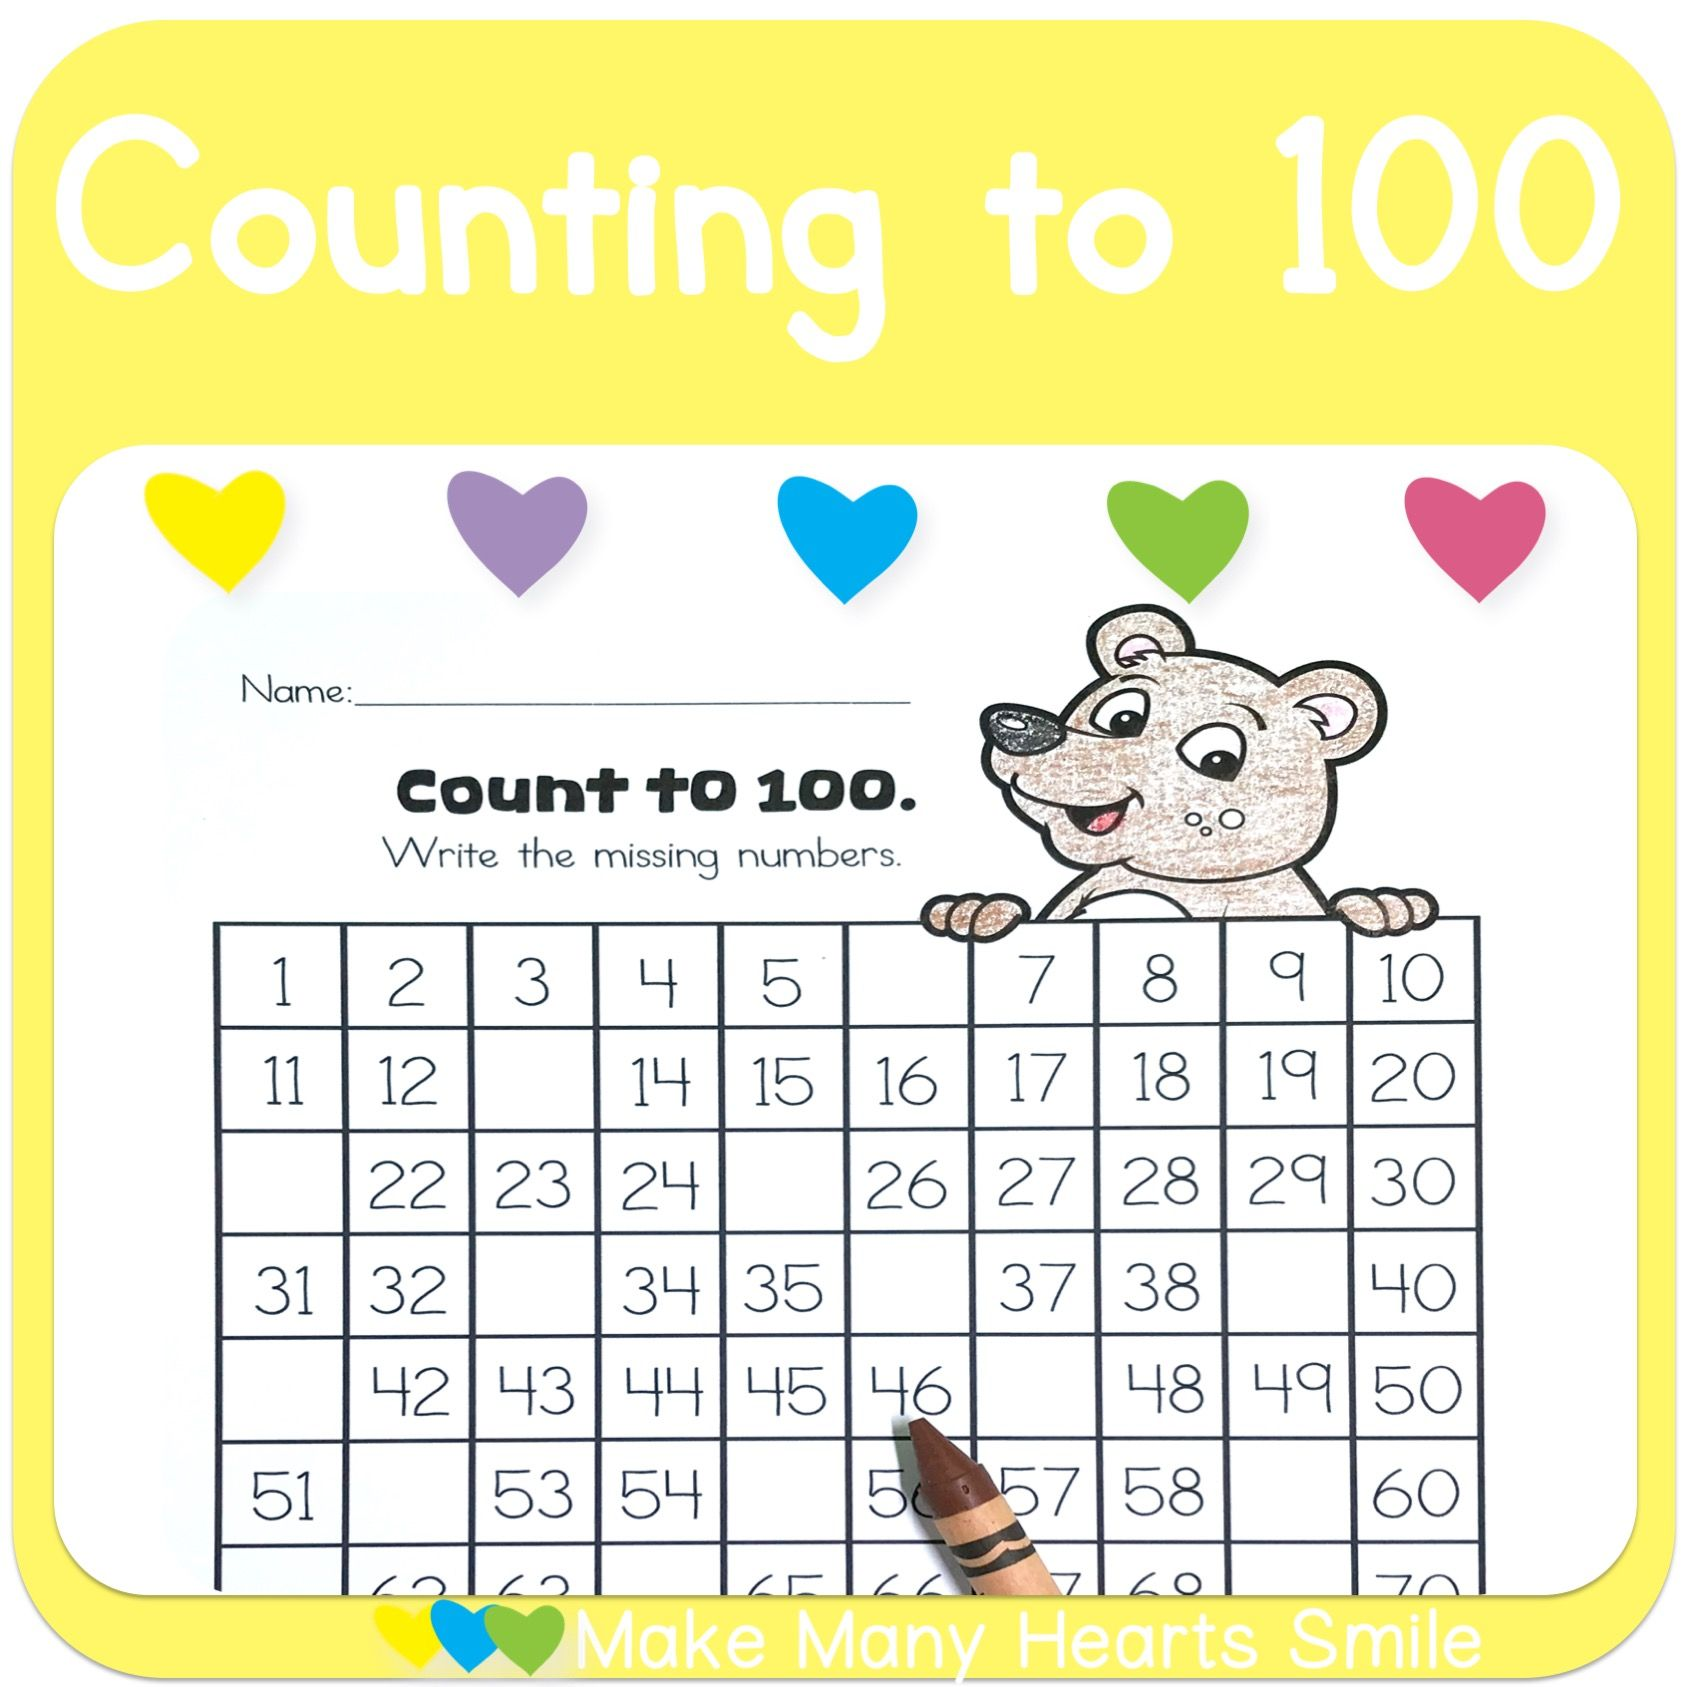 Count To 100 With Bear Mhs38